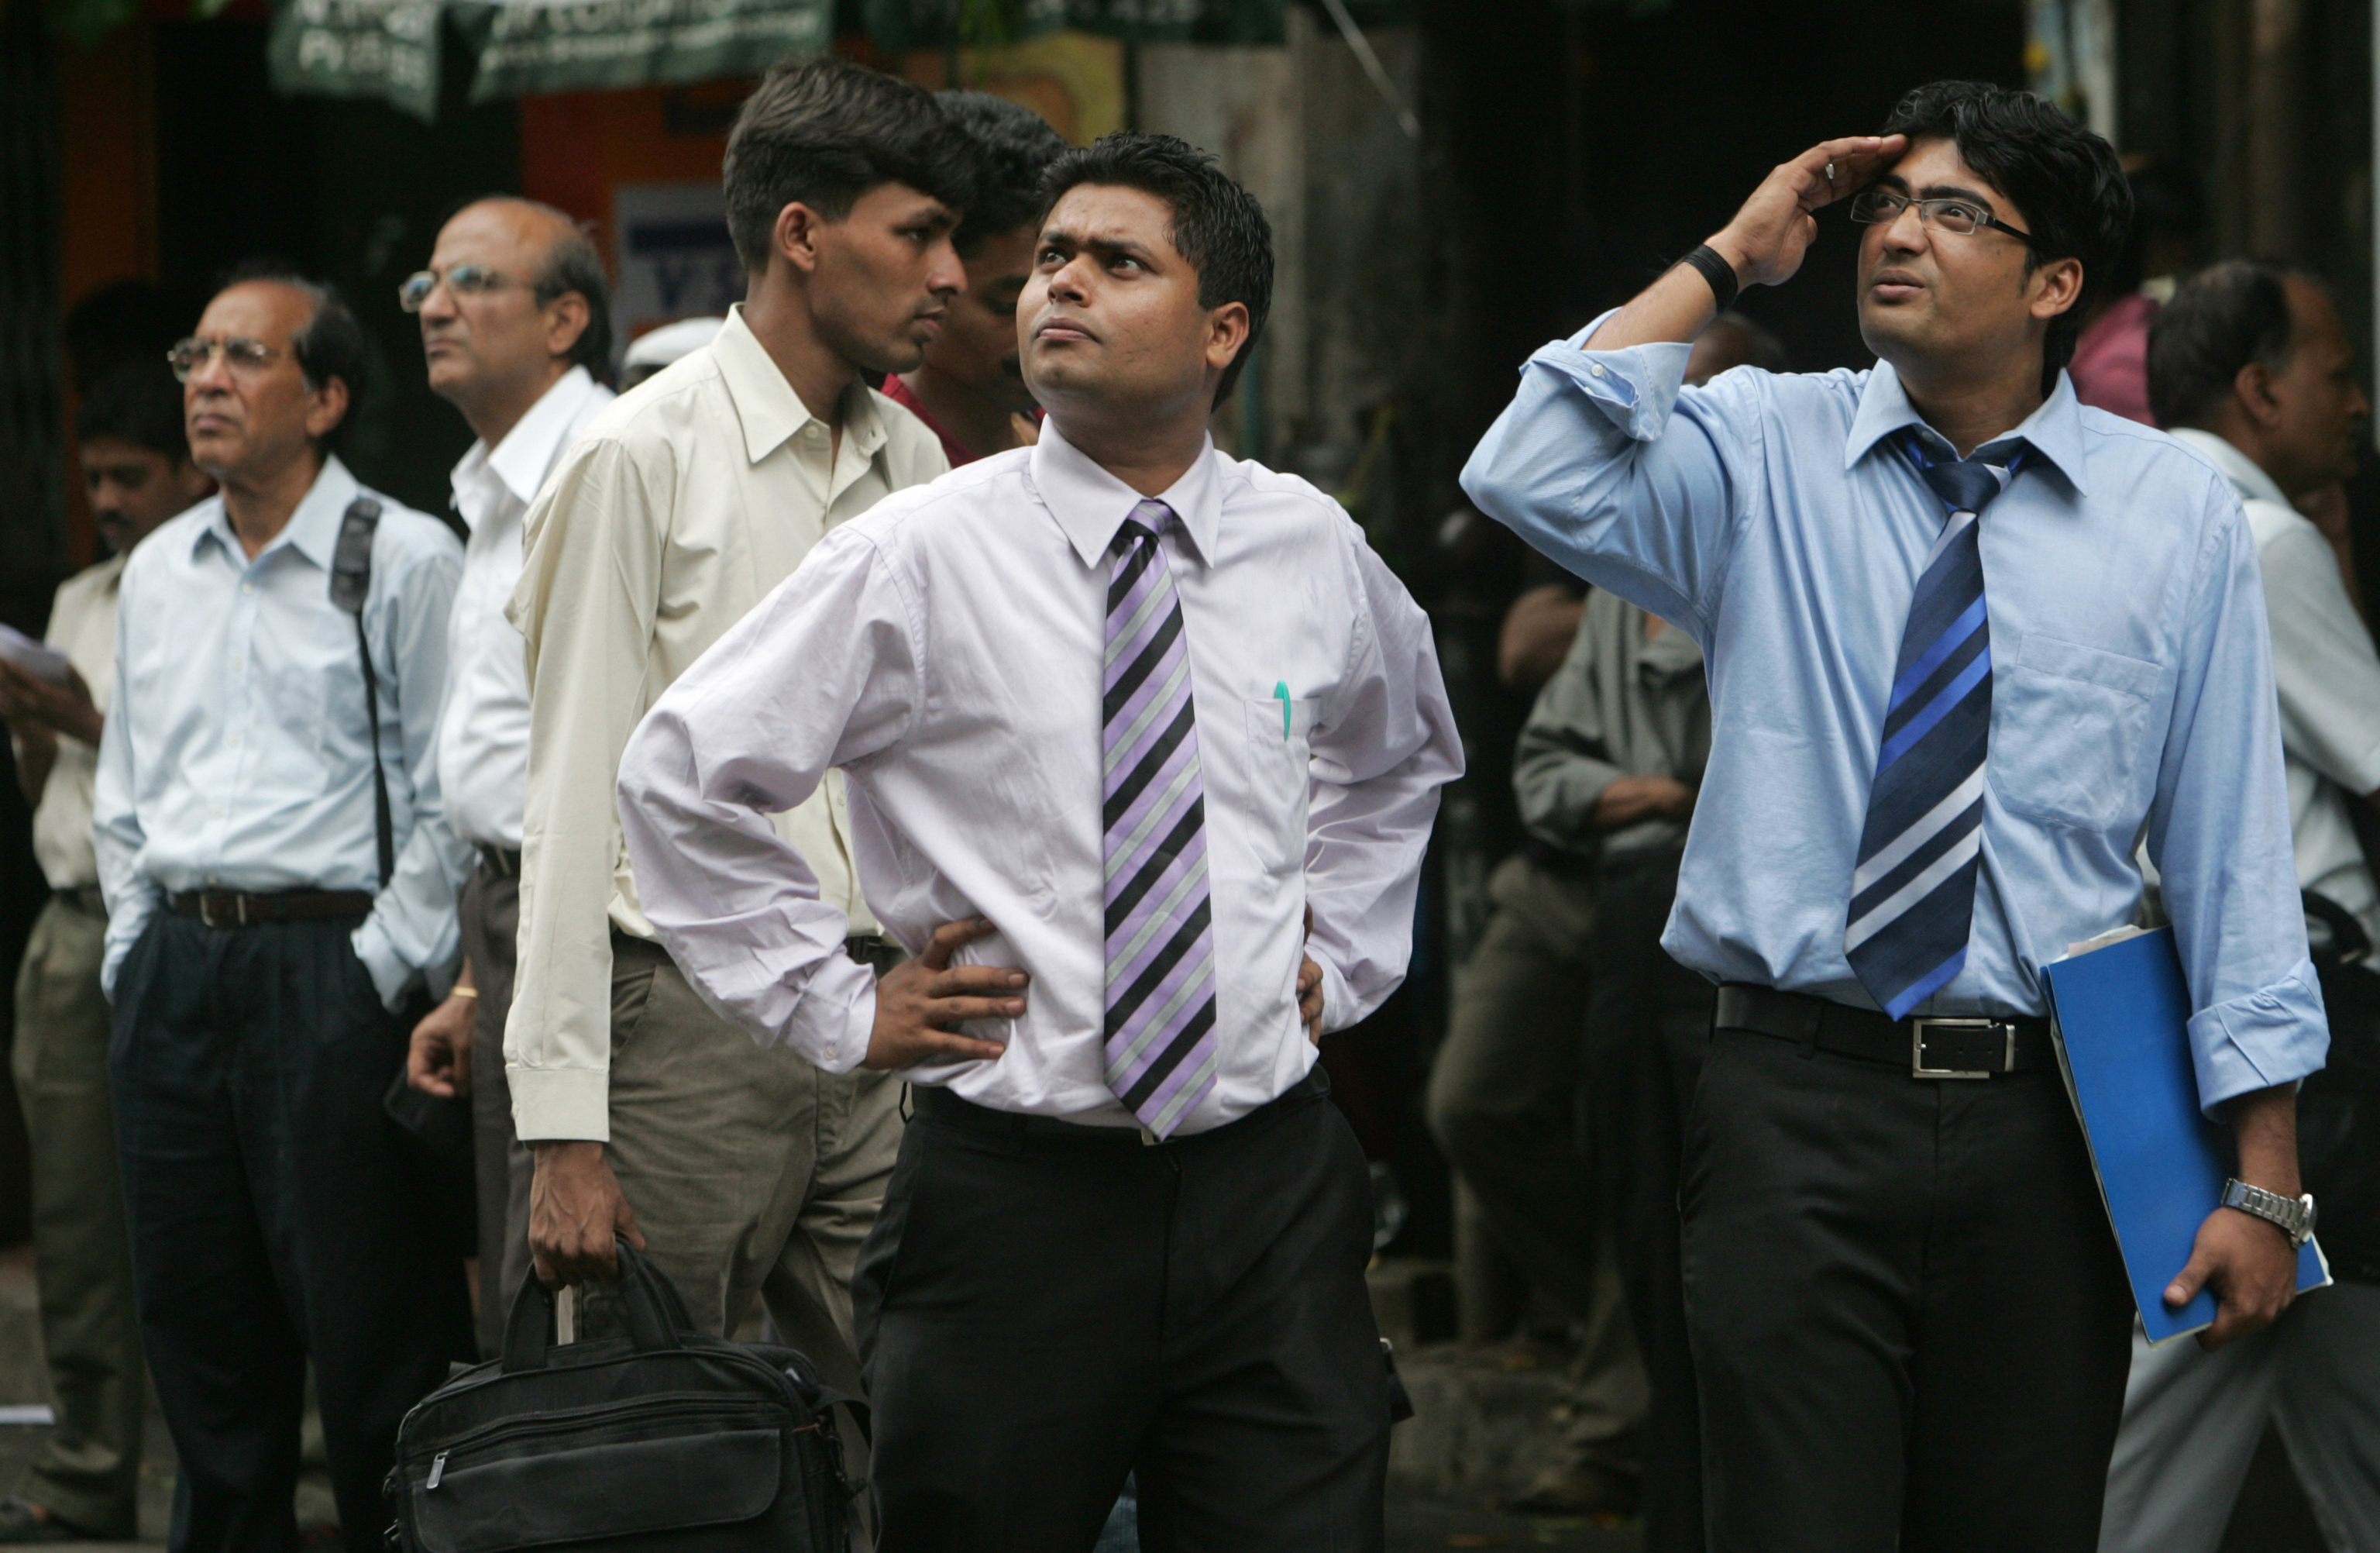 Passerby investors outside the Bombay Stock Exchange. India is hoping to attract more investment from Russia. Source: Getty Images